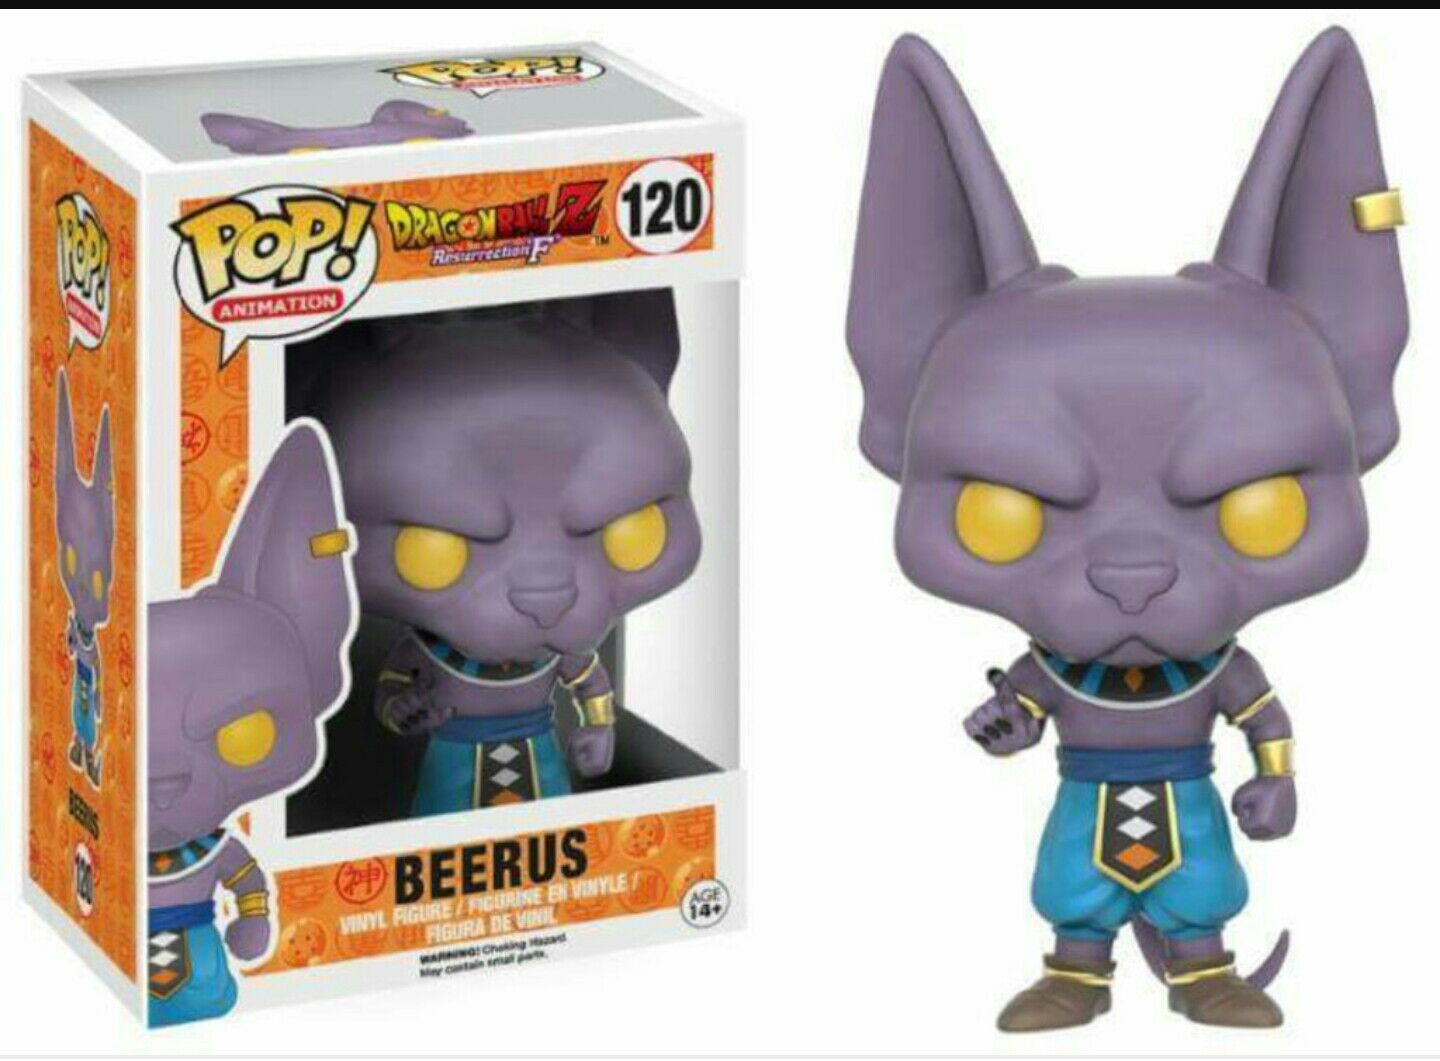 Beerus Dragon Ball Funko Pop without box